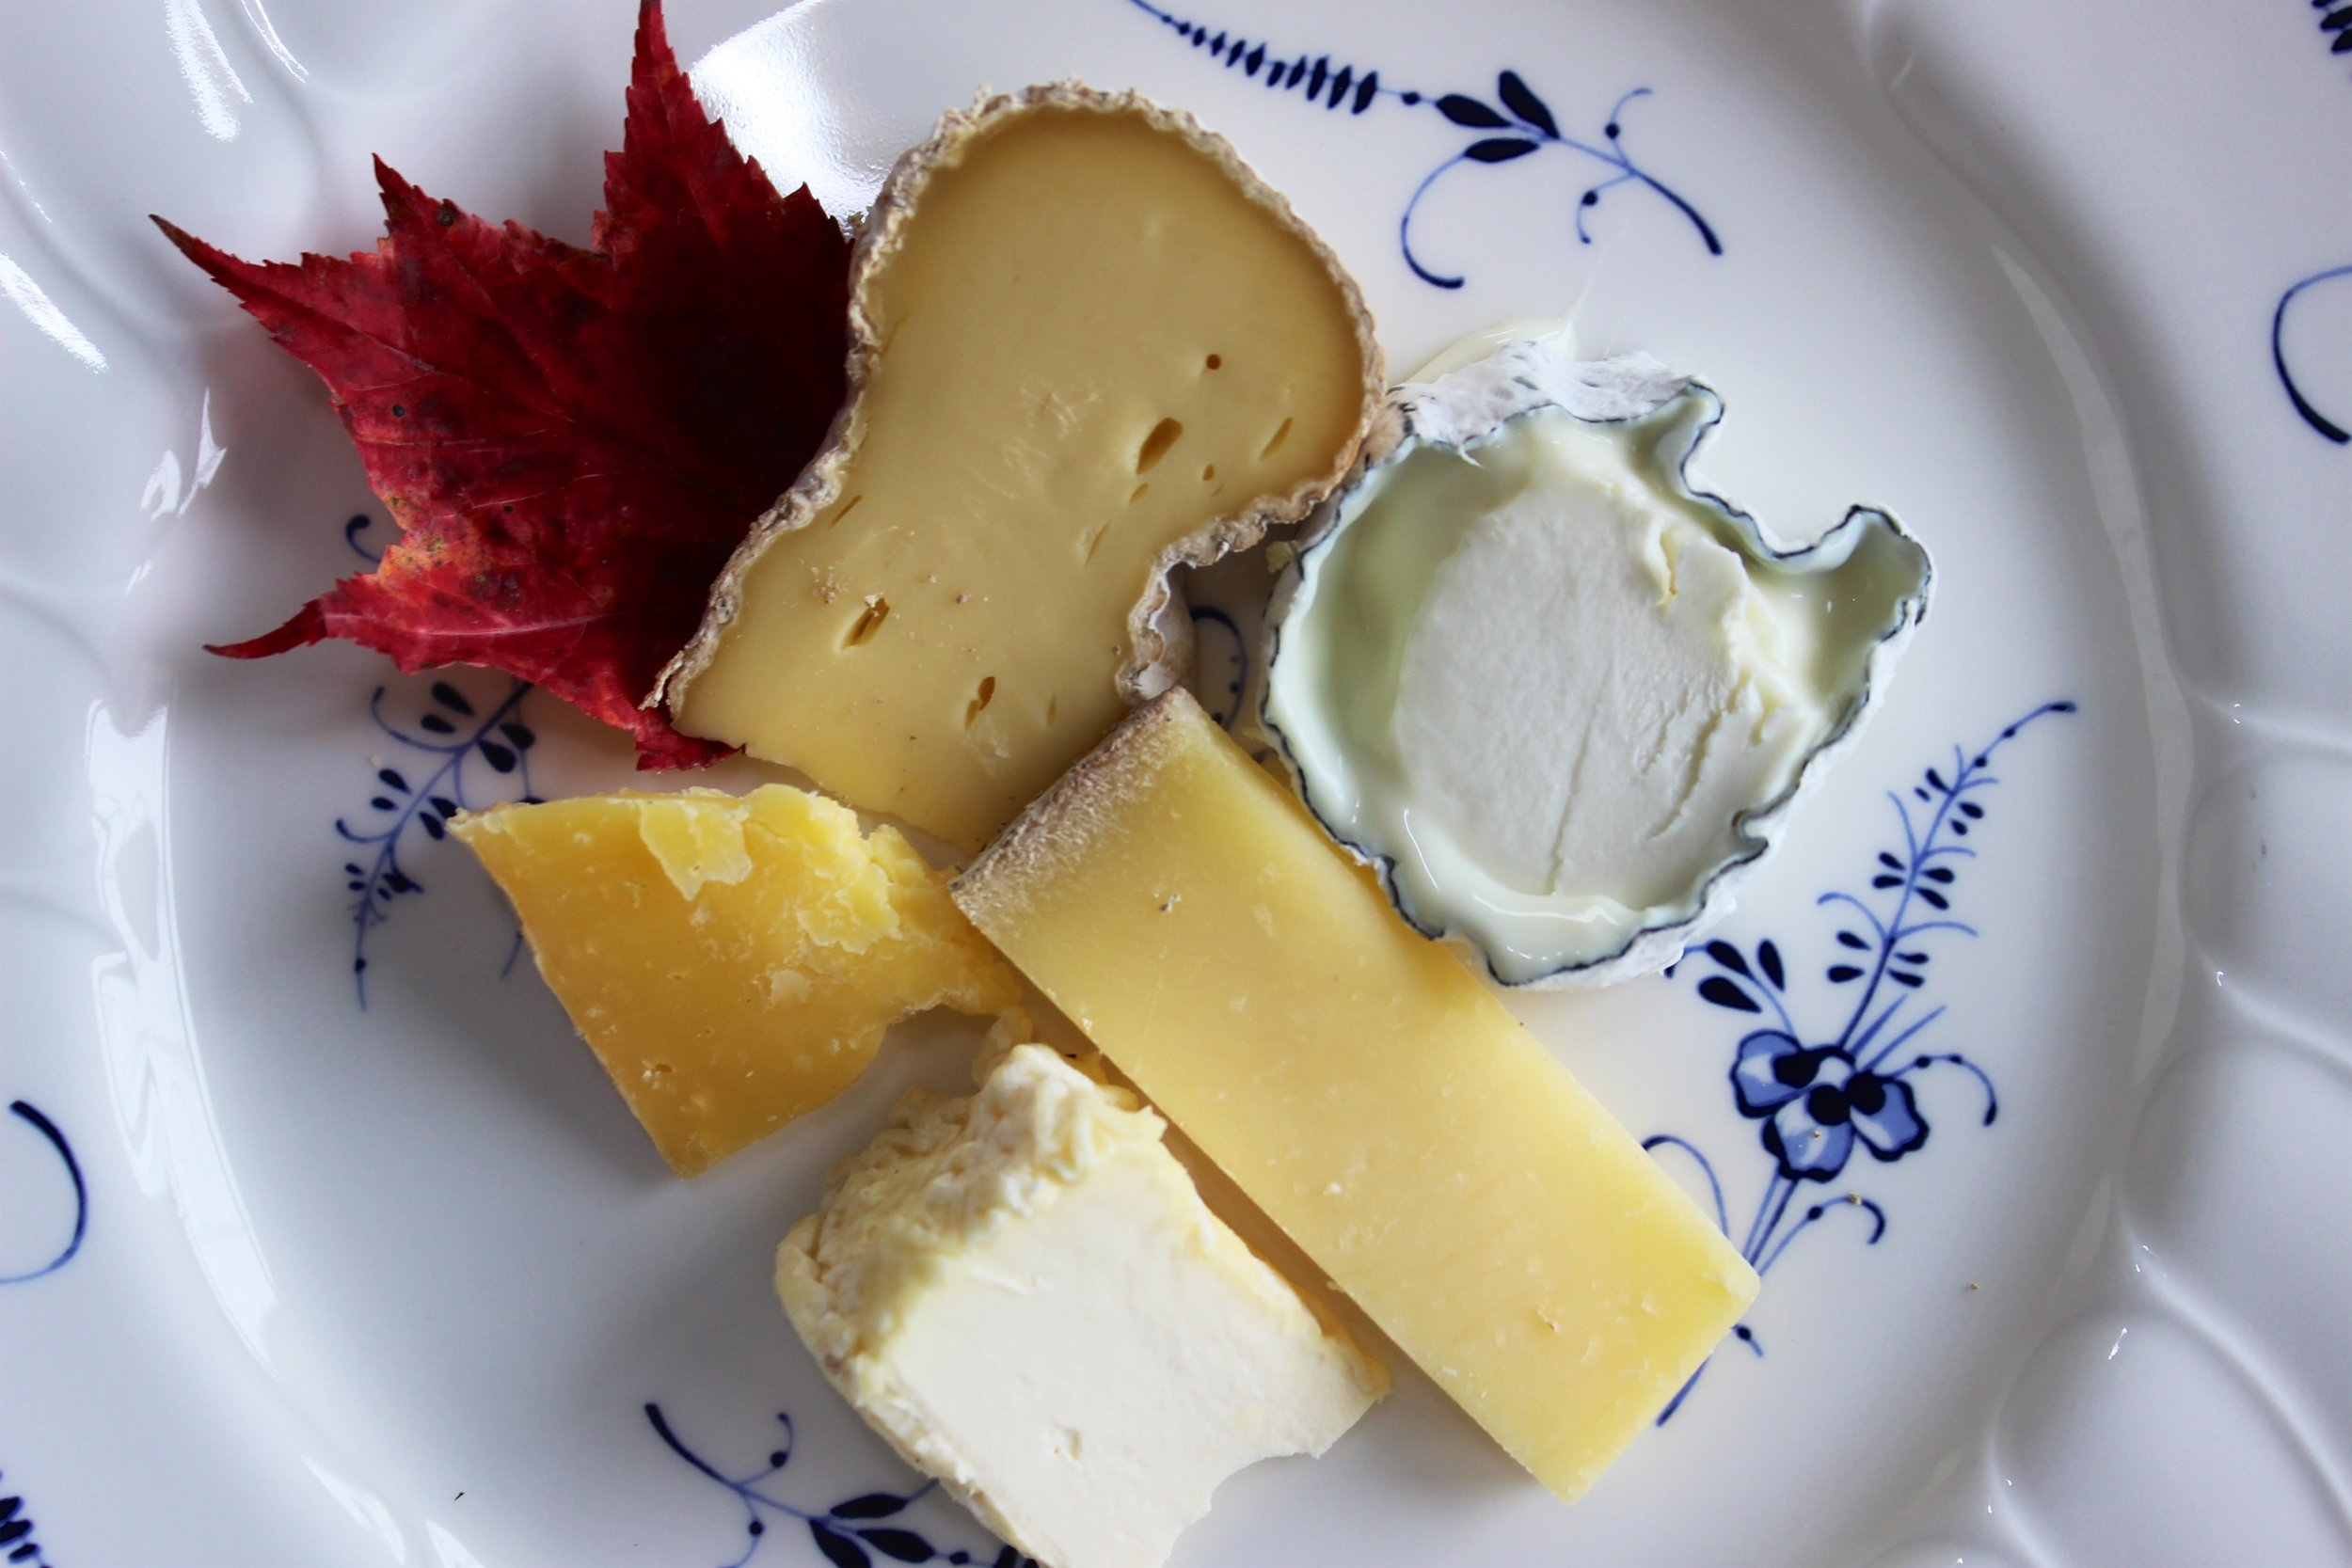 A Fall Adirondack cheese plate by Carriage House Cooking School. Cheeses (clockwise from from top left): Poundcake | Sugar House Creamery, Barkeater Buche | Asgaard Farm and Dairy, Dutch Knuckle | Sugar House Creamery, Little Dicken | Sugar House Creamery, Courron | North Country Creamery.